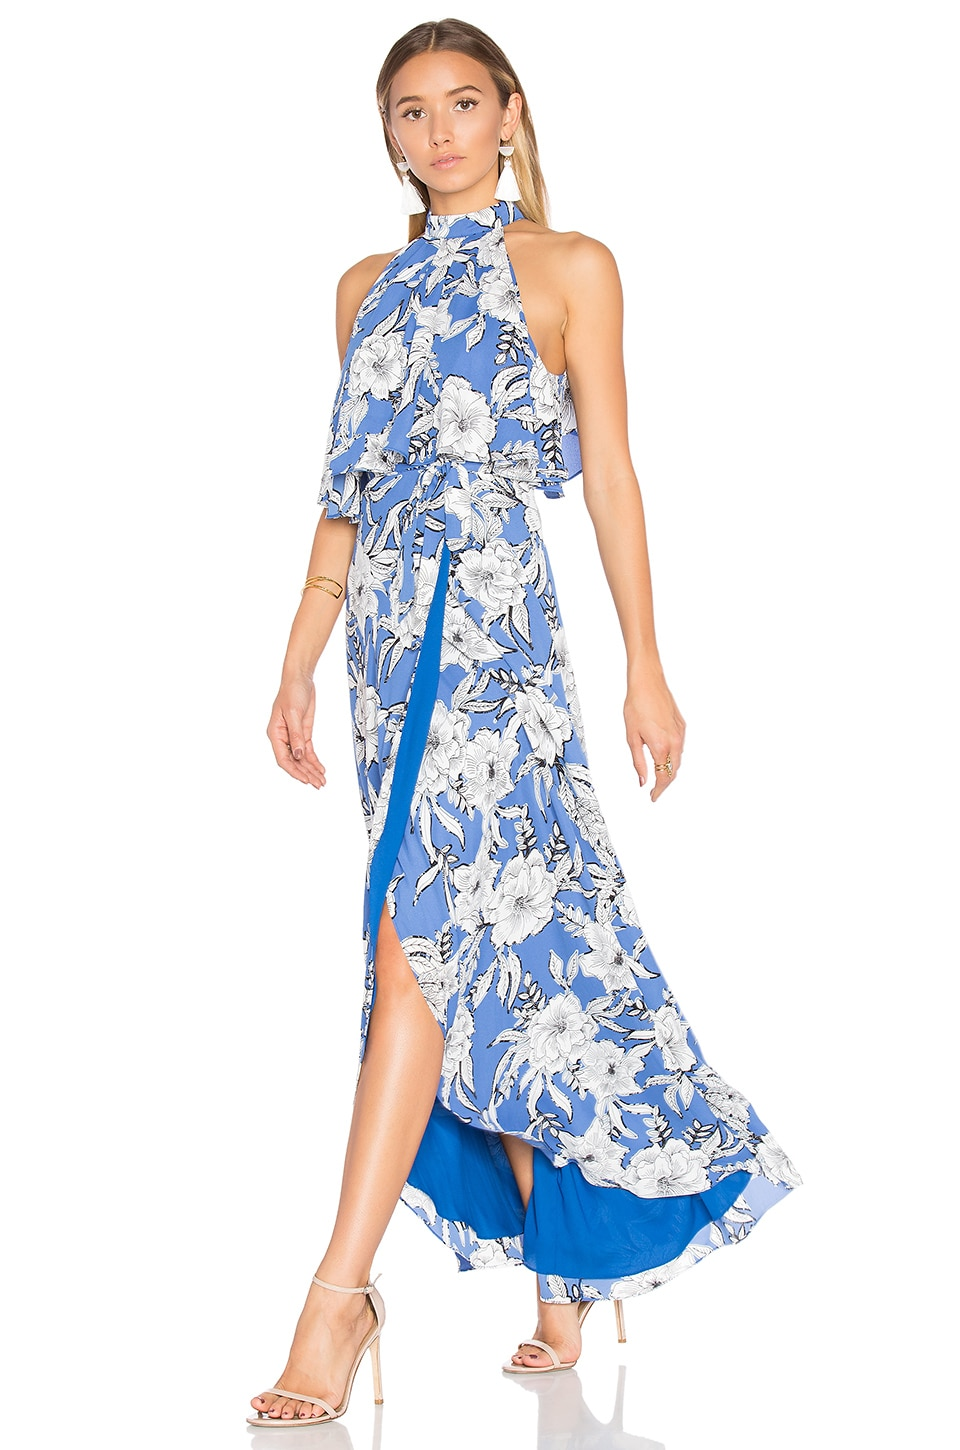 Lovers + Friends Golden Ray Maxi Dress in Riviera Floral